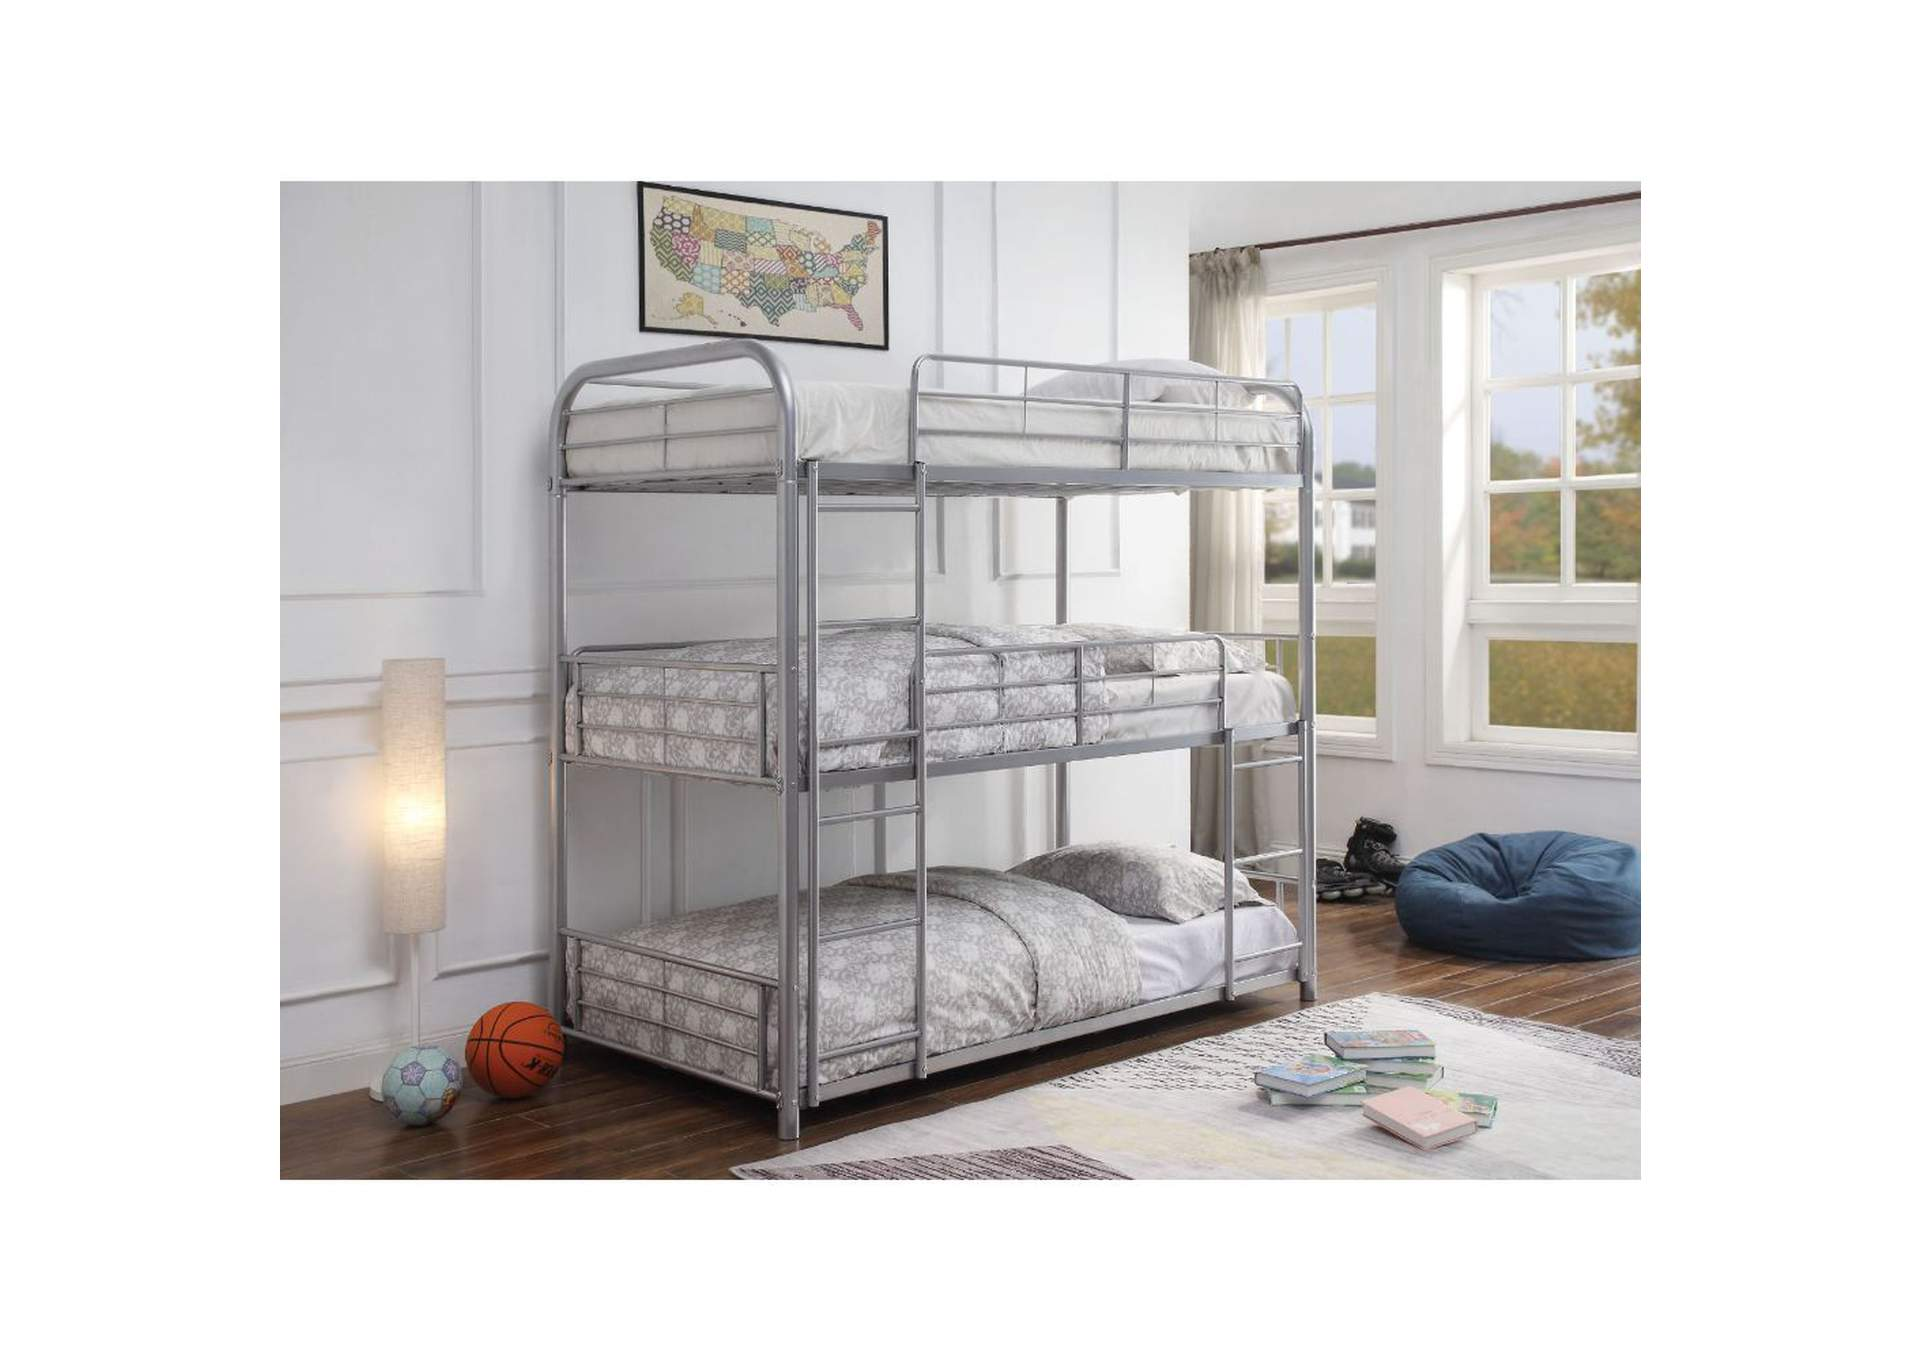 Cairo Silver Triple Twin Bunk Bed,Acme